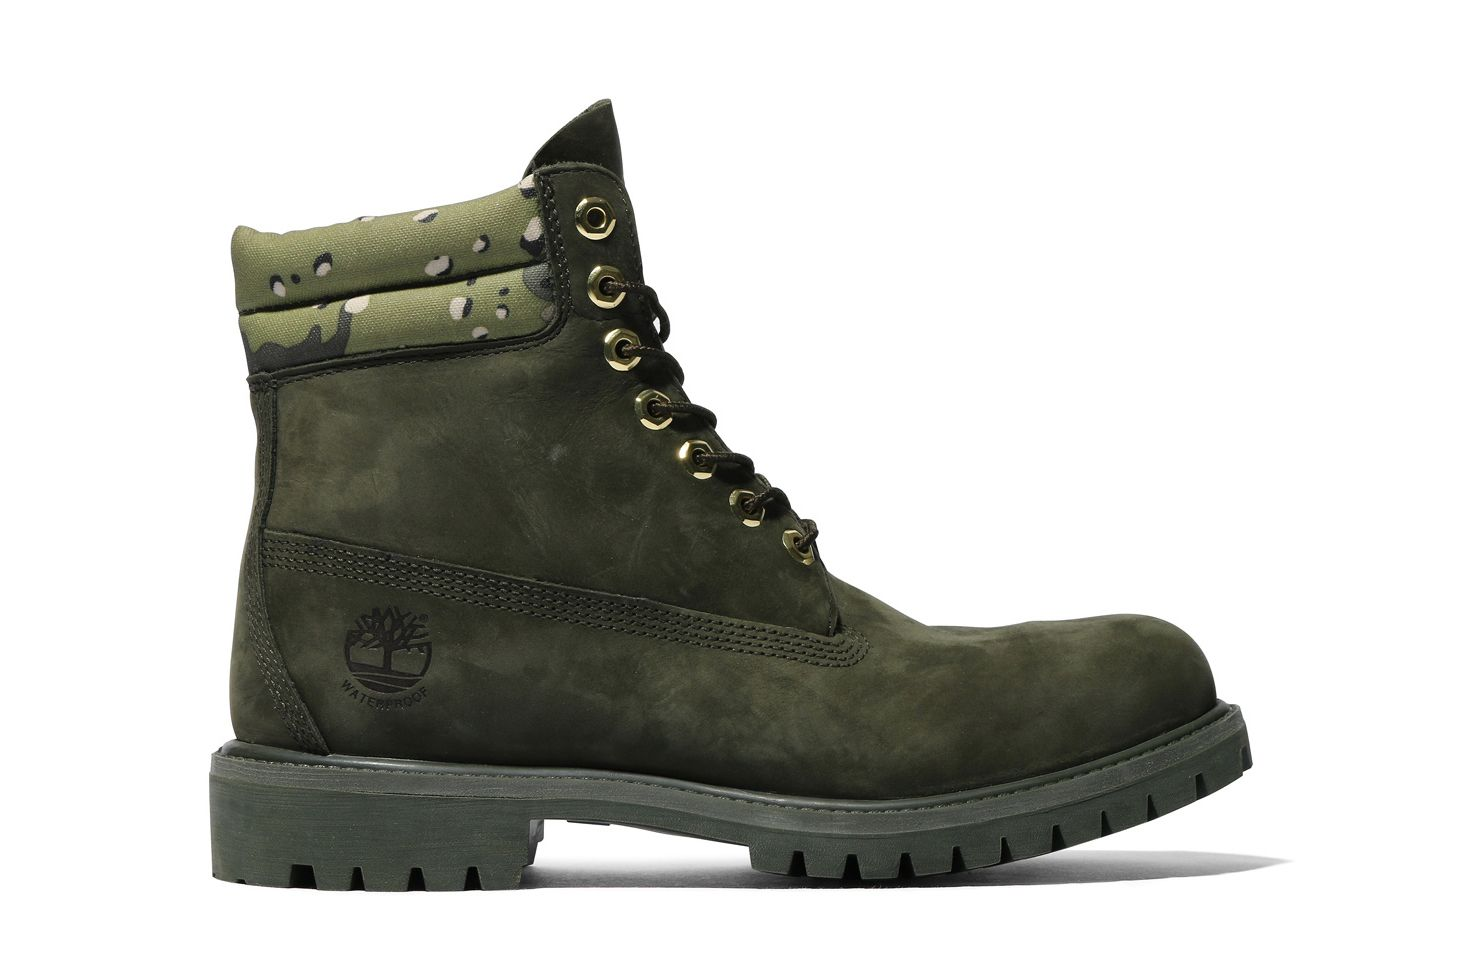 4841c5ed9ec Kinetics Adds Camouflage to the Timberland 6